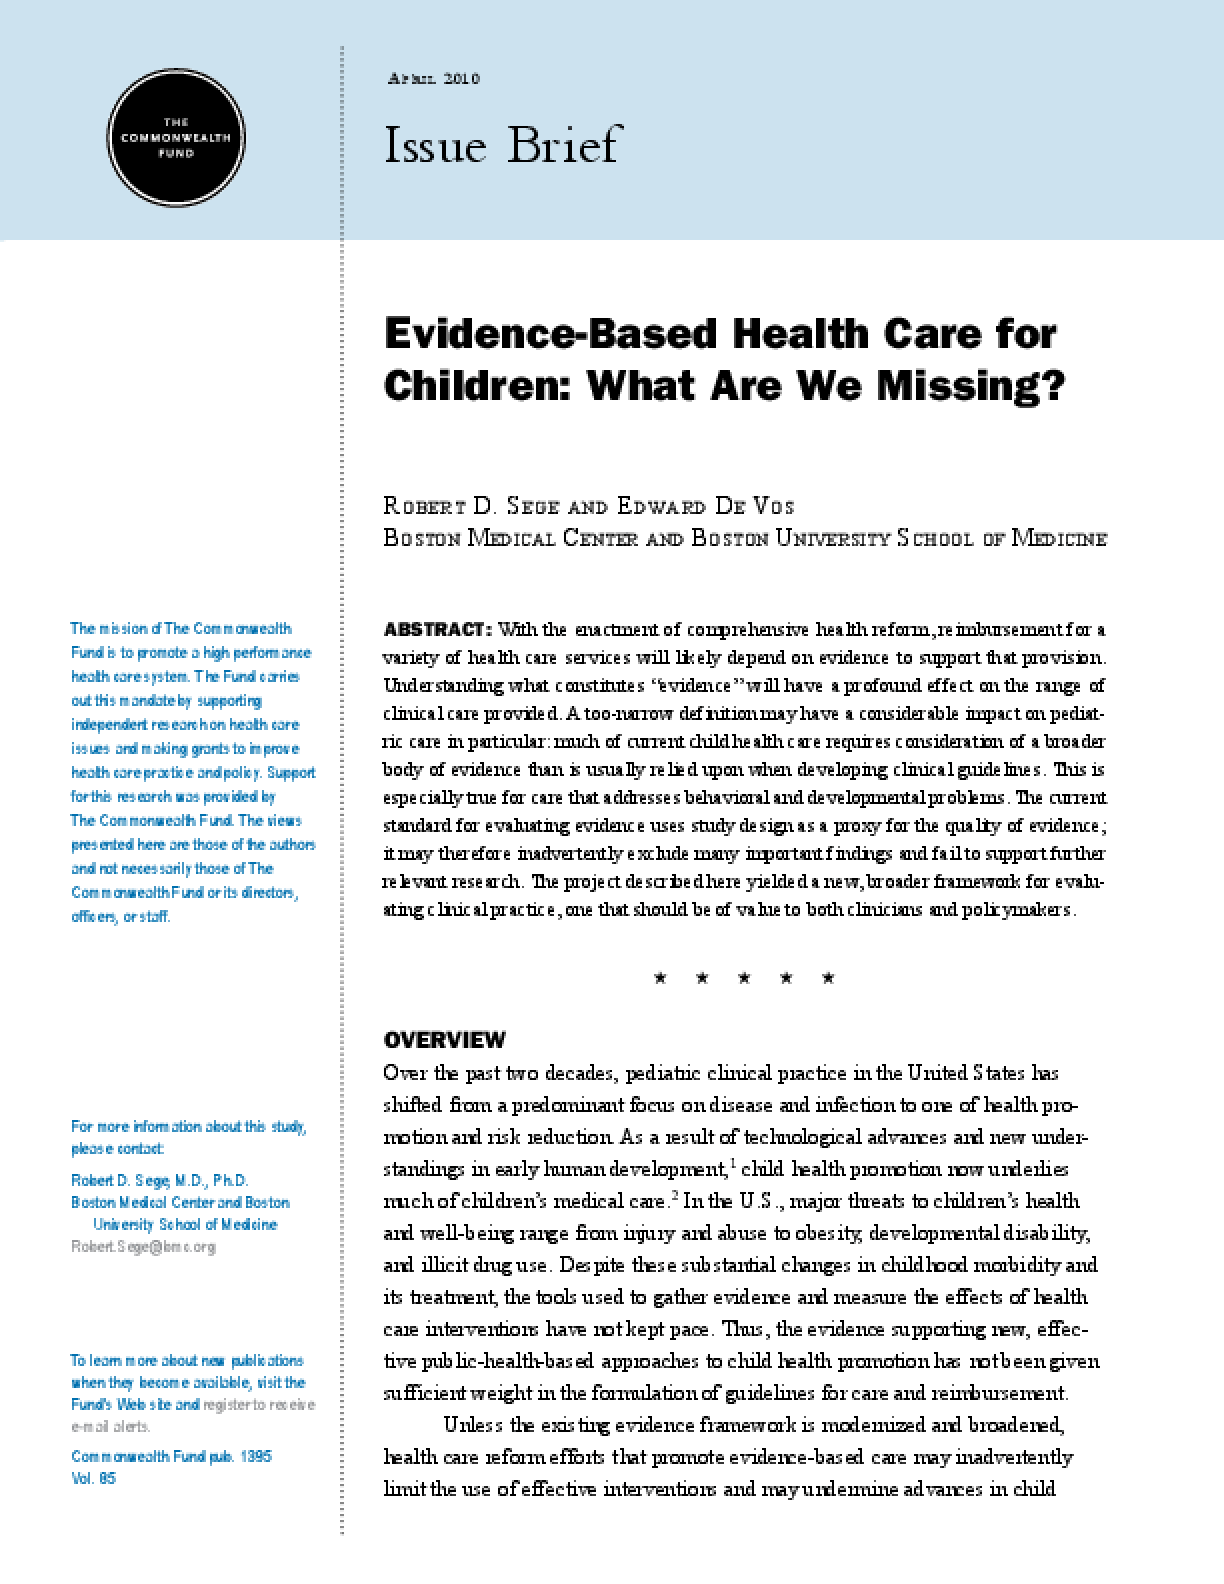 Evidence-Based Health Care for Children: What Are We Missing?